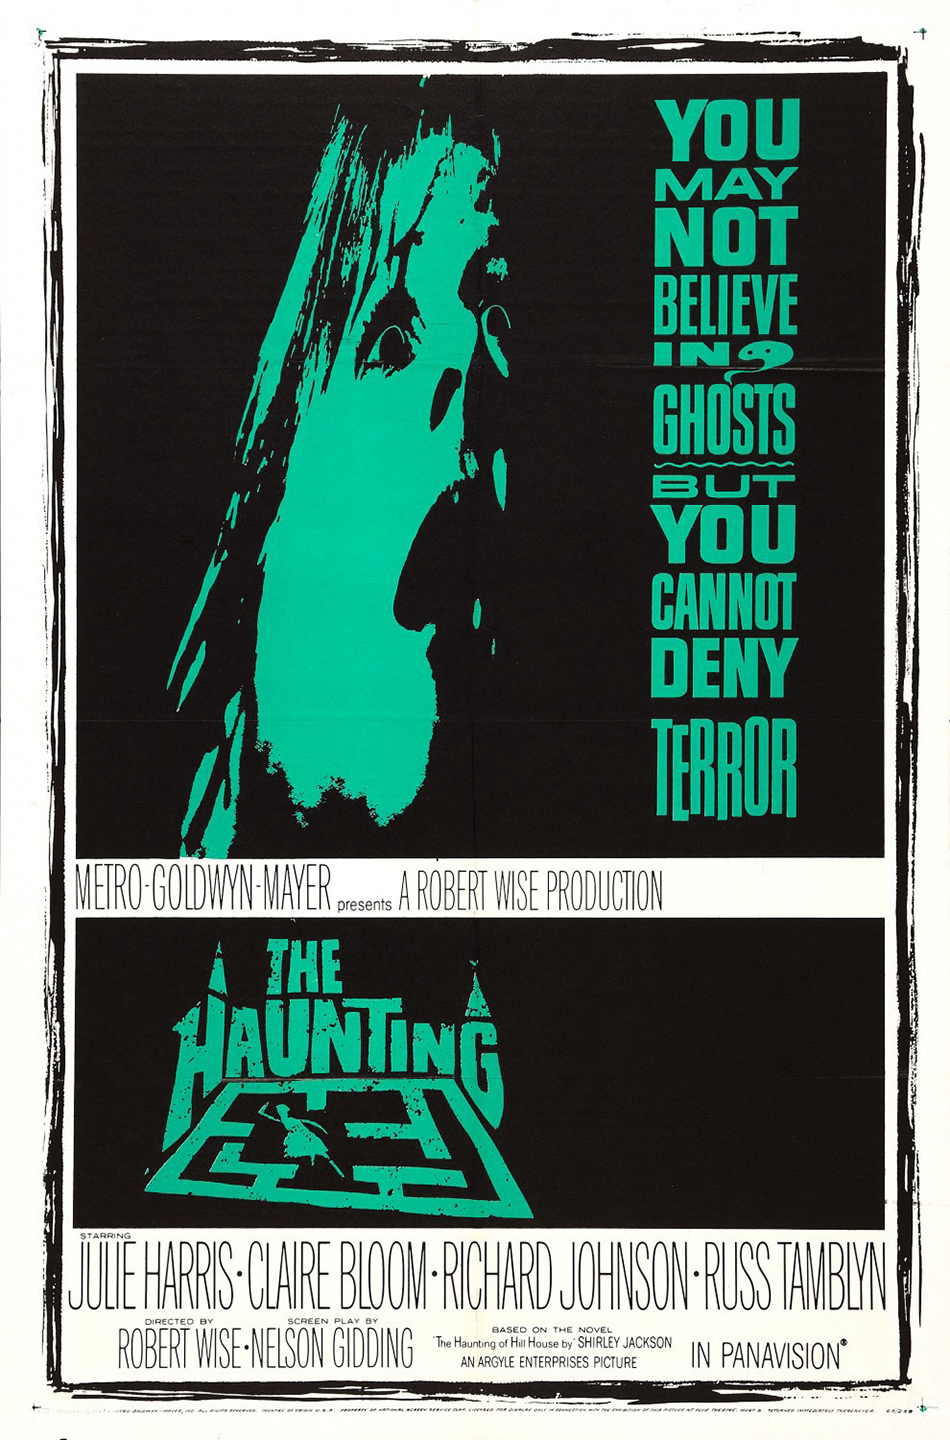 Flashback: The Haunting (1963) - The American Society of